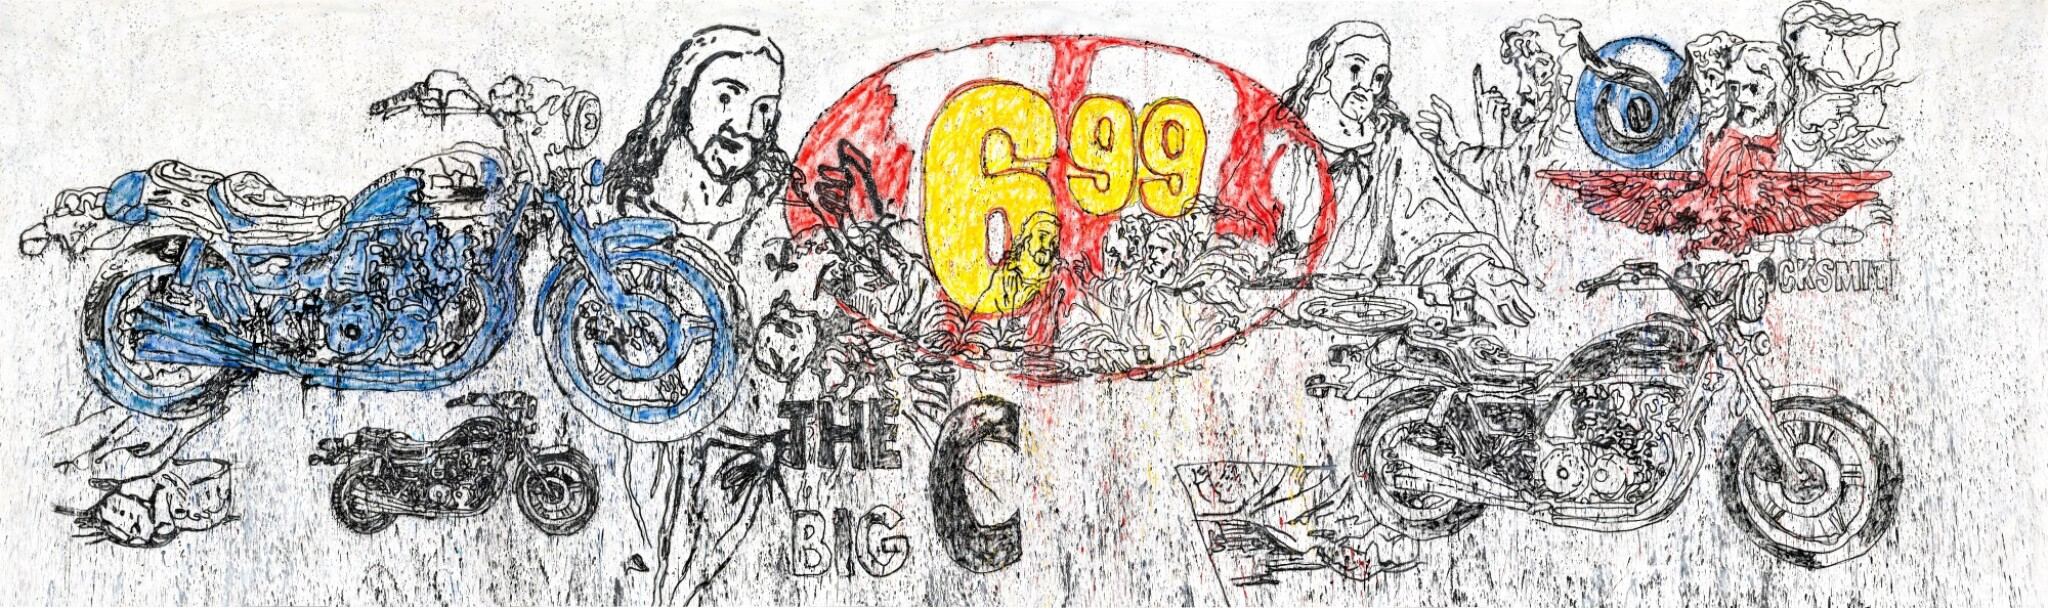 View full screen - View 1 of Lot 40. The Last Supper (The Big C) II (inspired by Andy Warhol)   最後的晚餐(THE BIG C) II(靈感自安迪·沃荷 ).